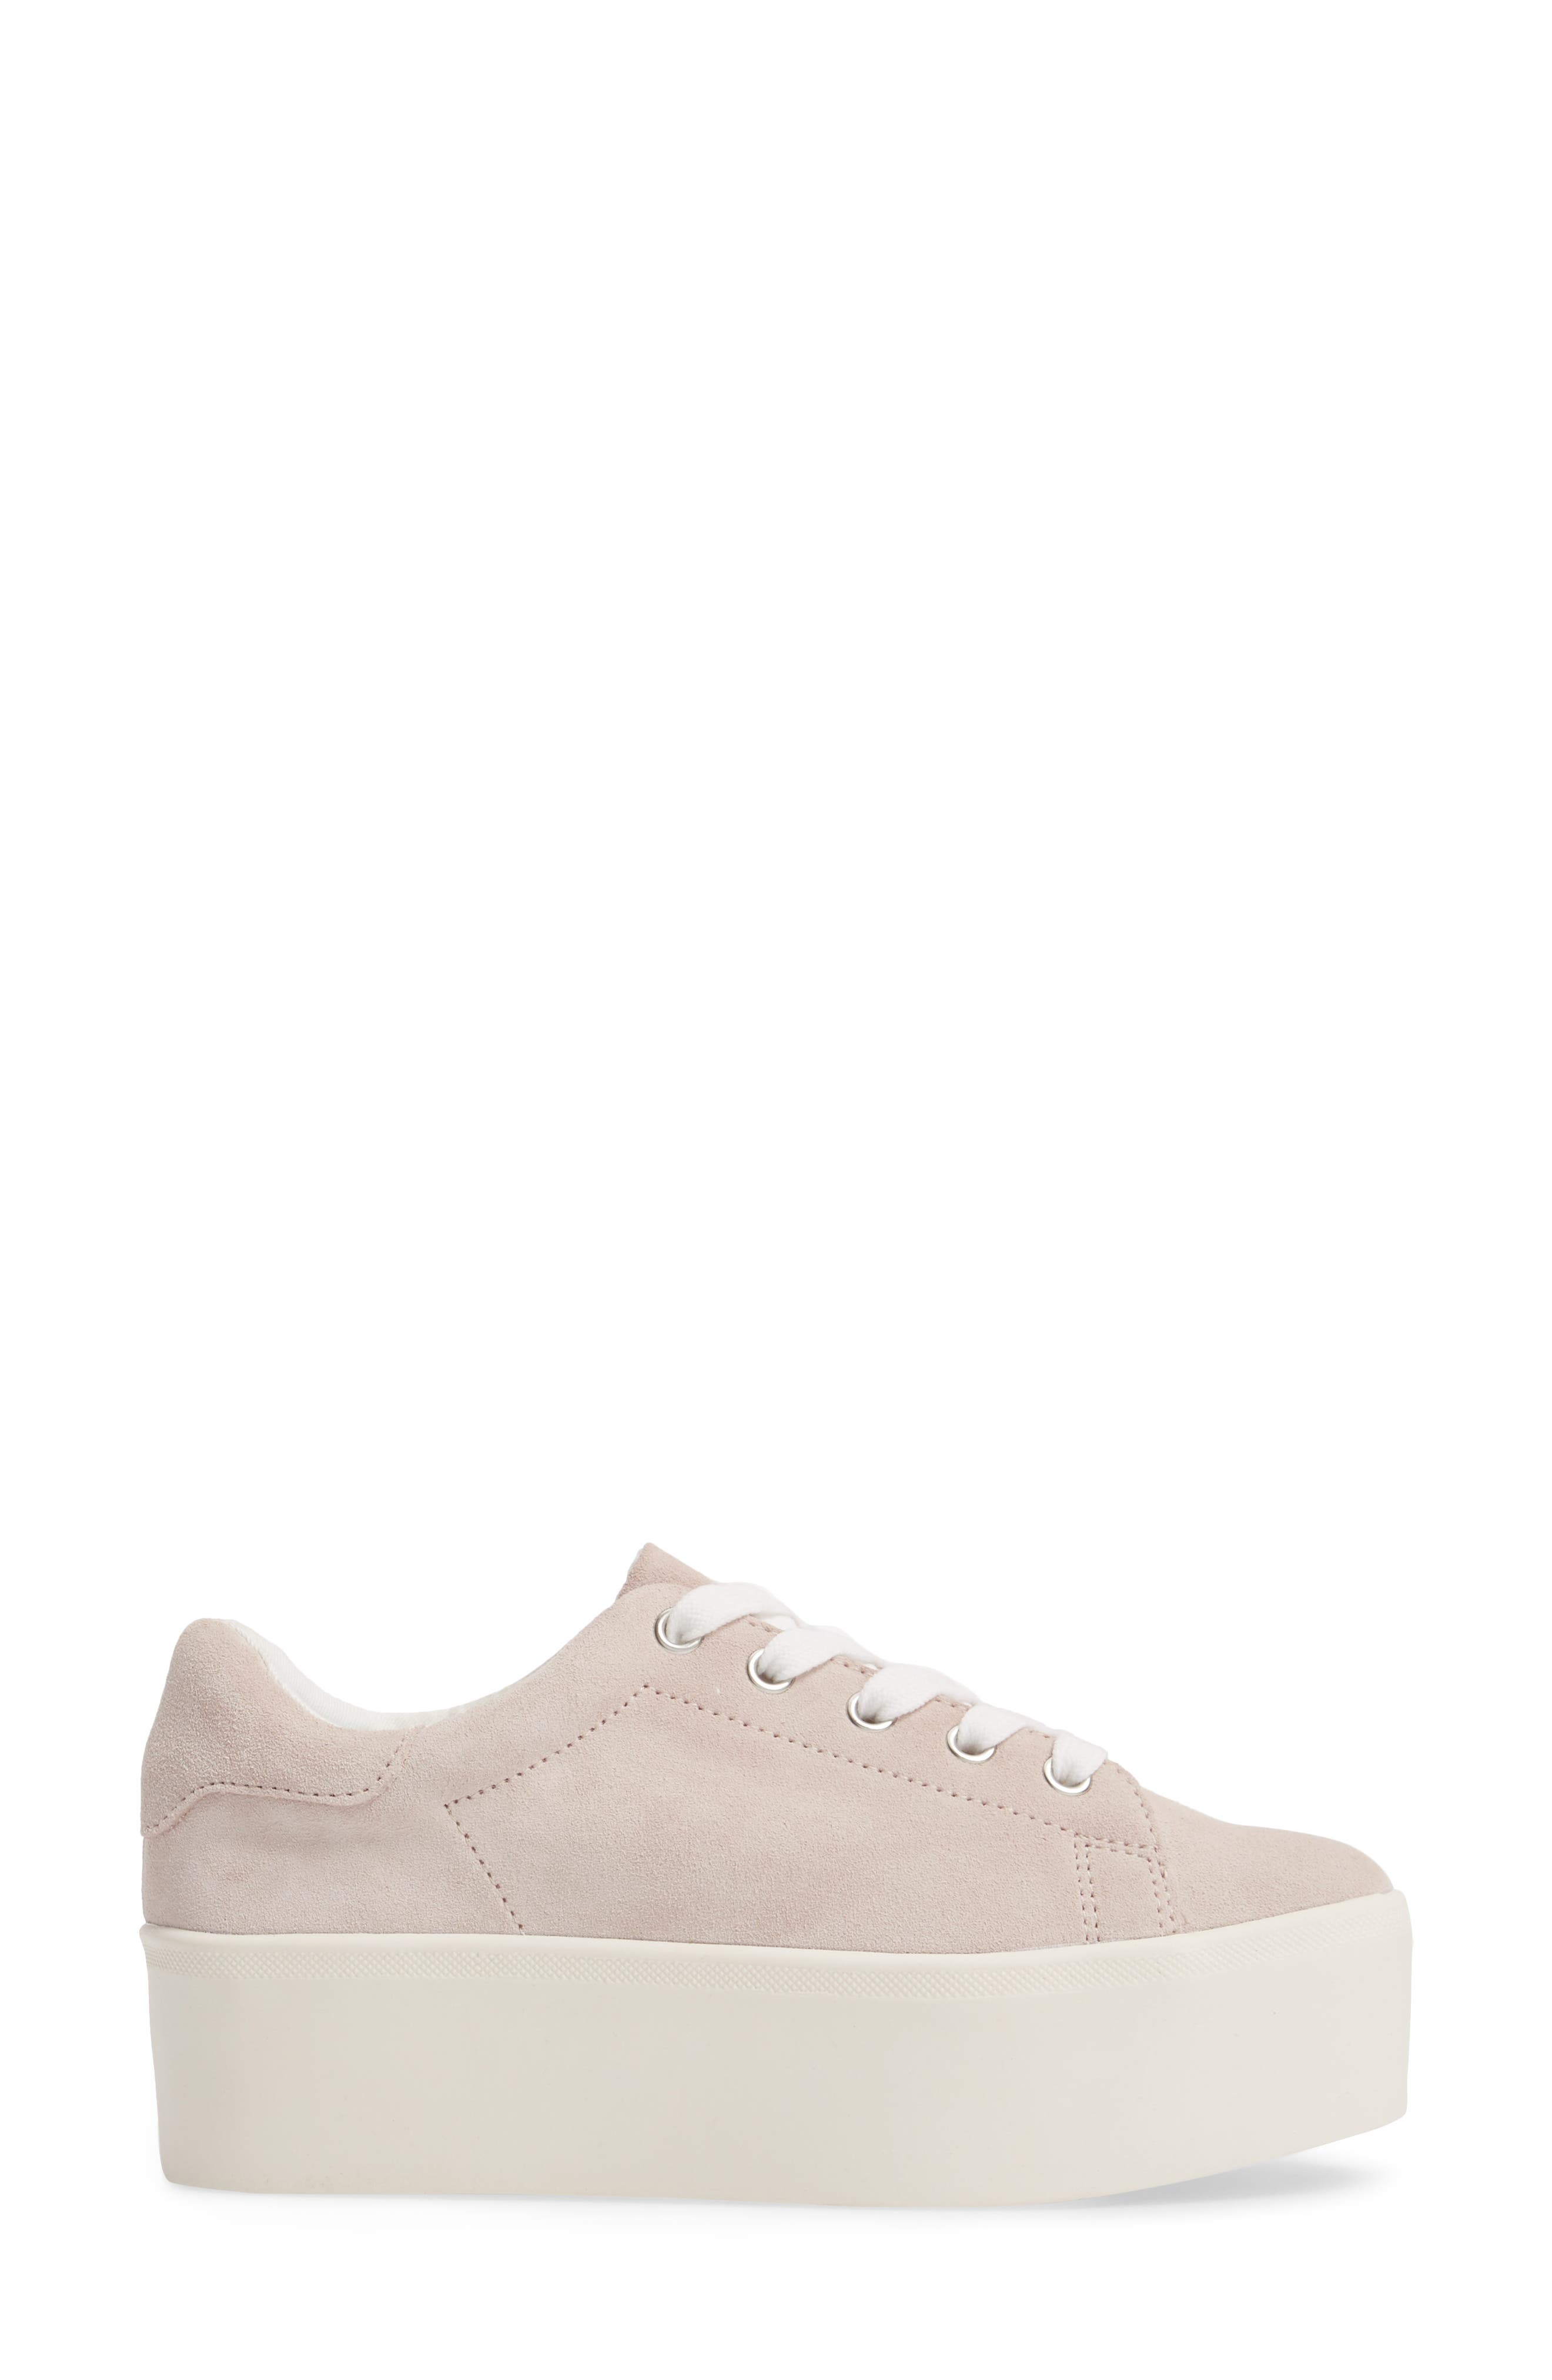 Palmer Sneaker,                             Alternate thumbnail 3, color,                             Pink Suede